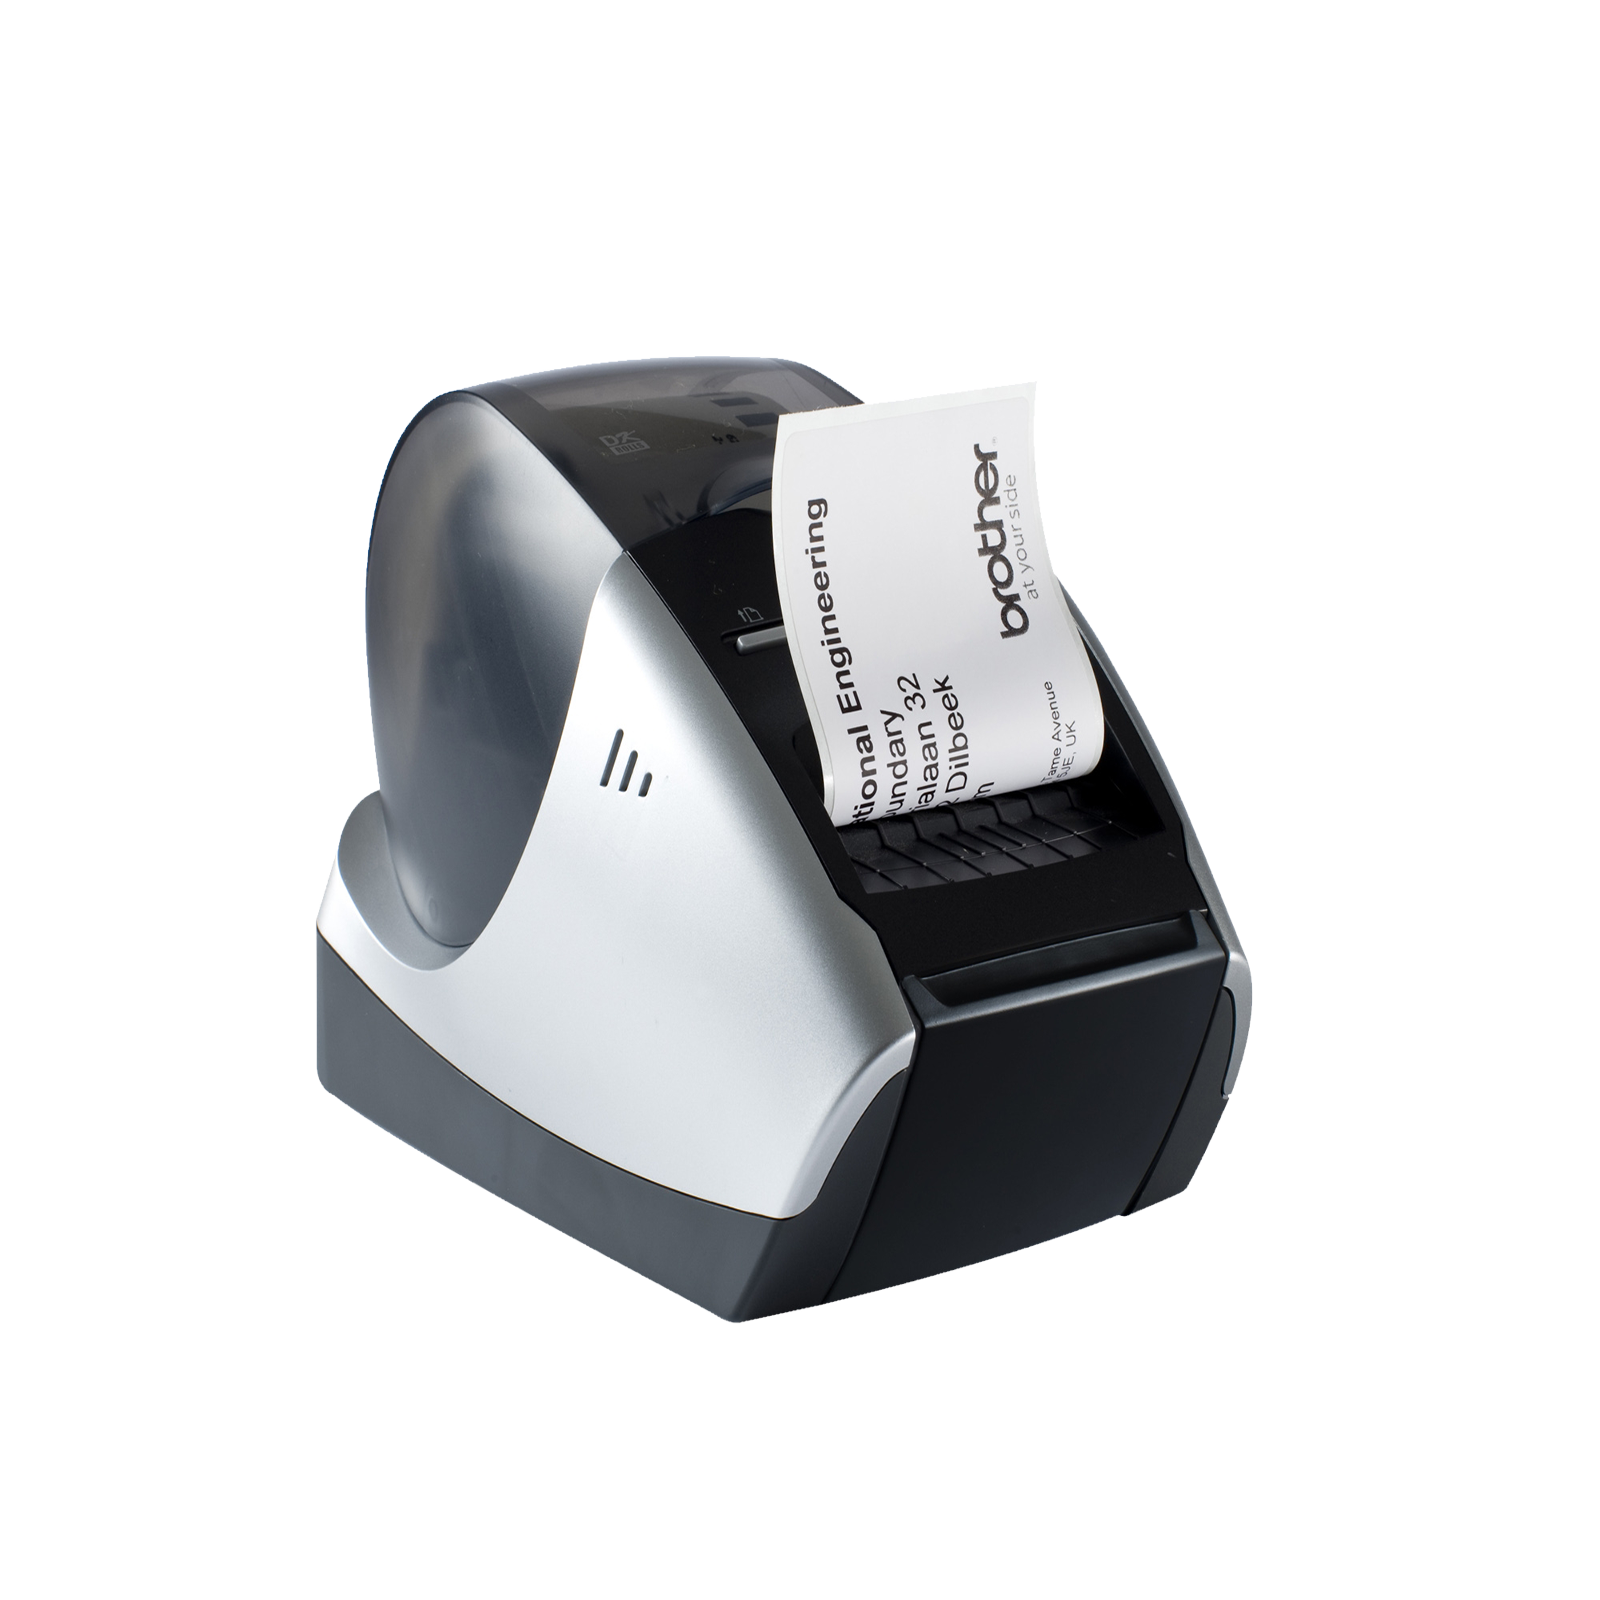 QL570, Imprimanta etichete direct termică , DK tape and DK label up to 62 mm width, 110 mm/s print speed, Fine resolution, automatic Cutter, USB Port.  1DK11201 (100 lables), 1DK22205 (8m), USB and mains cable